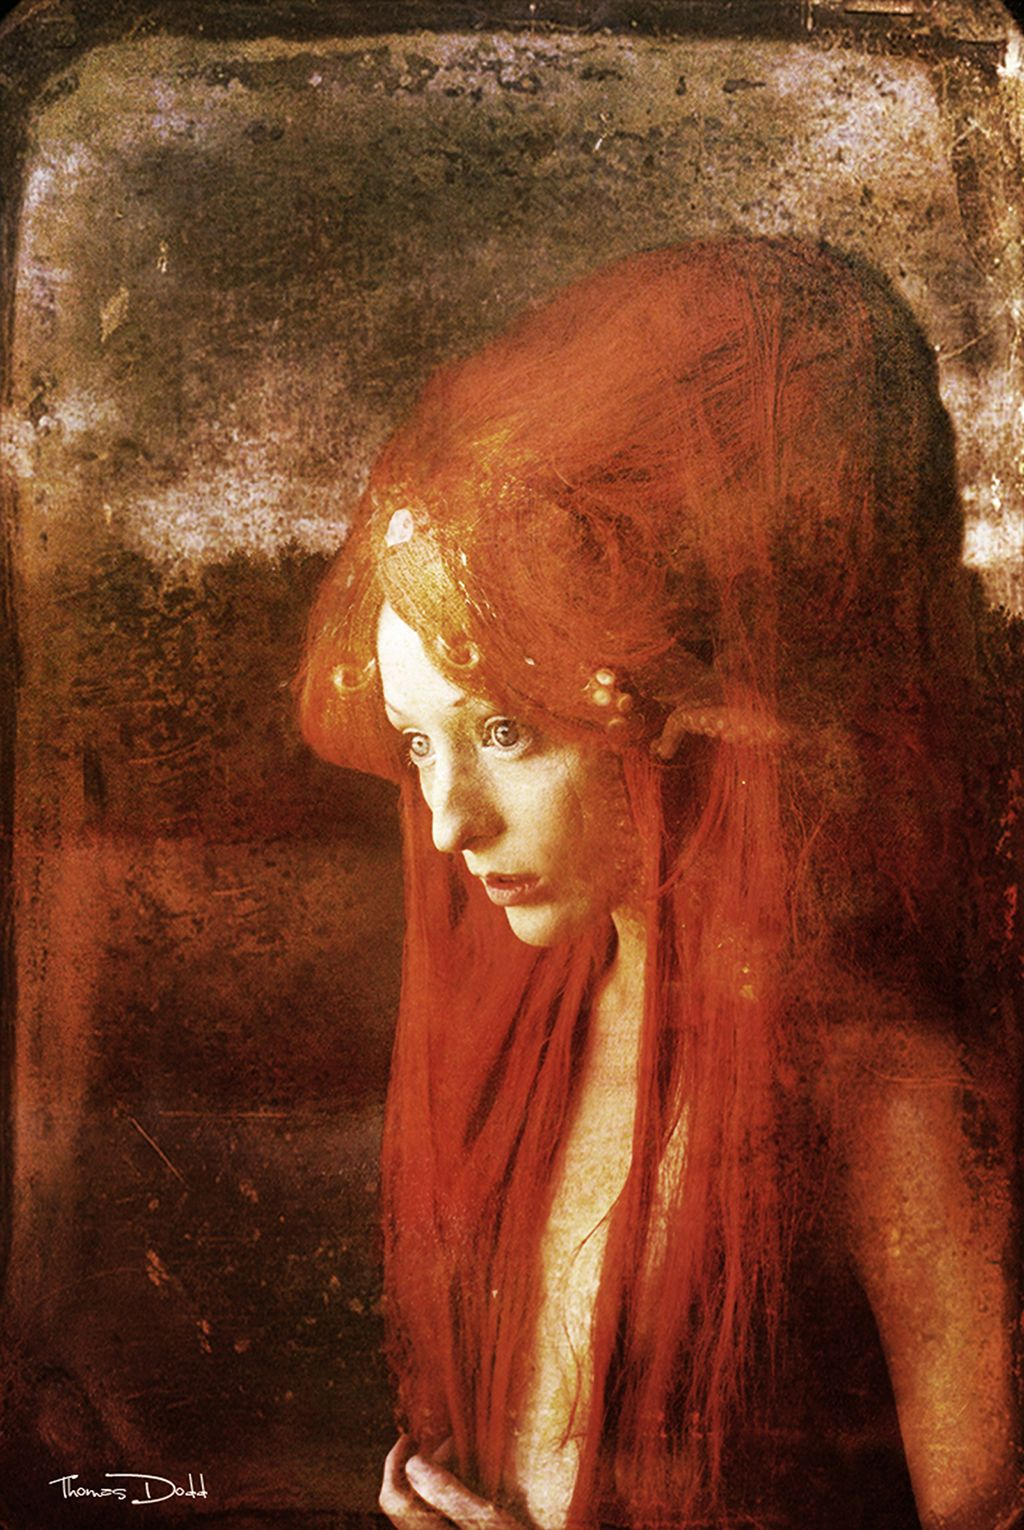 Creative photo art by Thomas Dodd